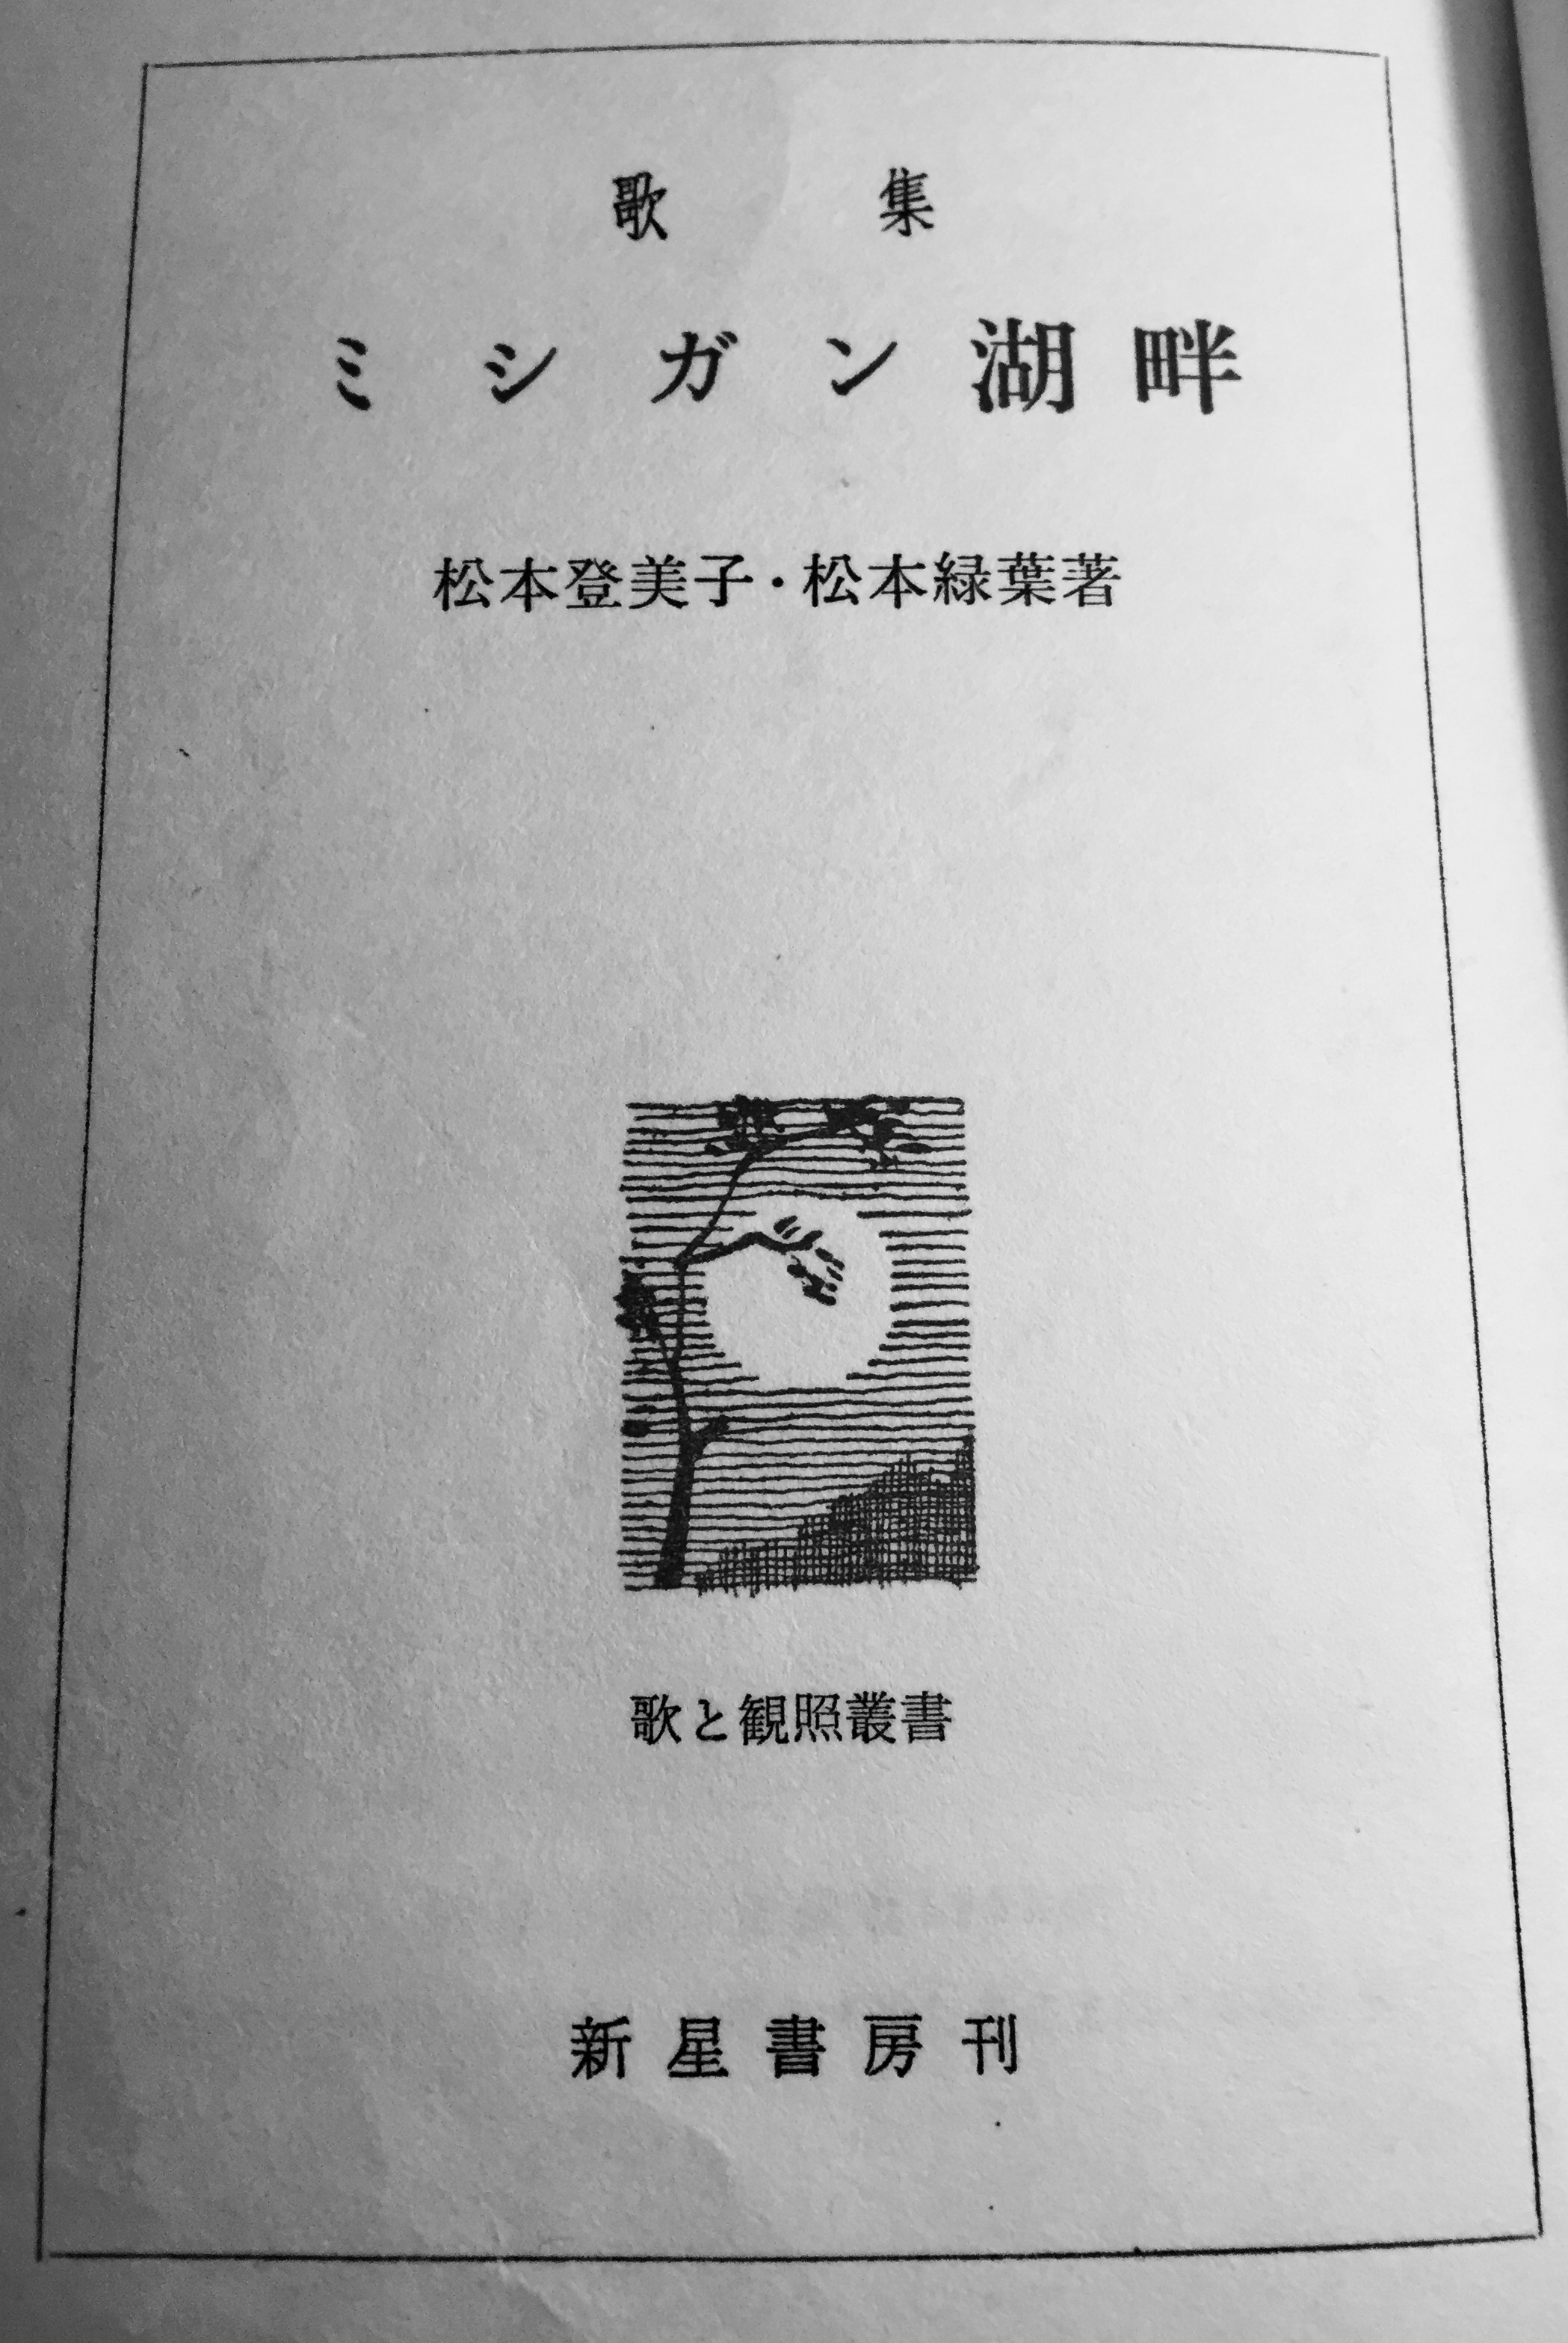 Frontispiece to the original, 1960 Japanese-language edition of the book, written by my grandparents, Tomiko and Ryokuyo Matsumoto. Their poems detail the period from 1942, when they were imprisoned in the World War II U.S. government prison camp at Heart Mountain, Wyoming, through their relocation to Chicago after the war.